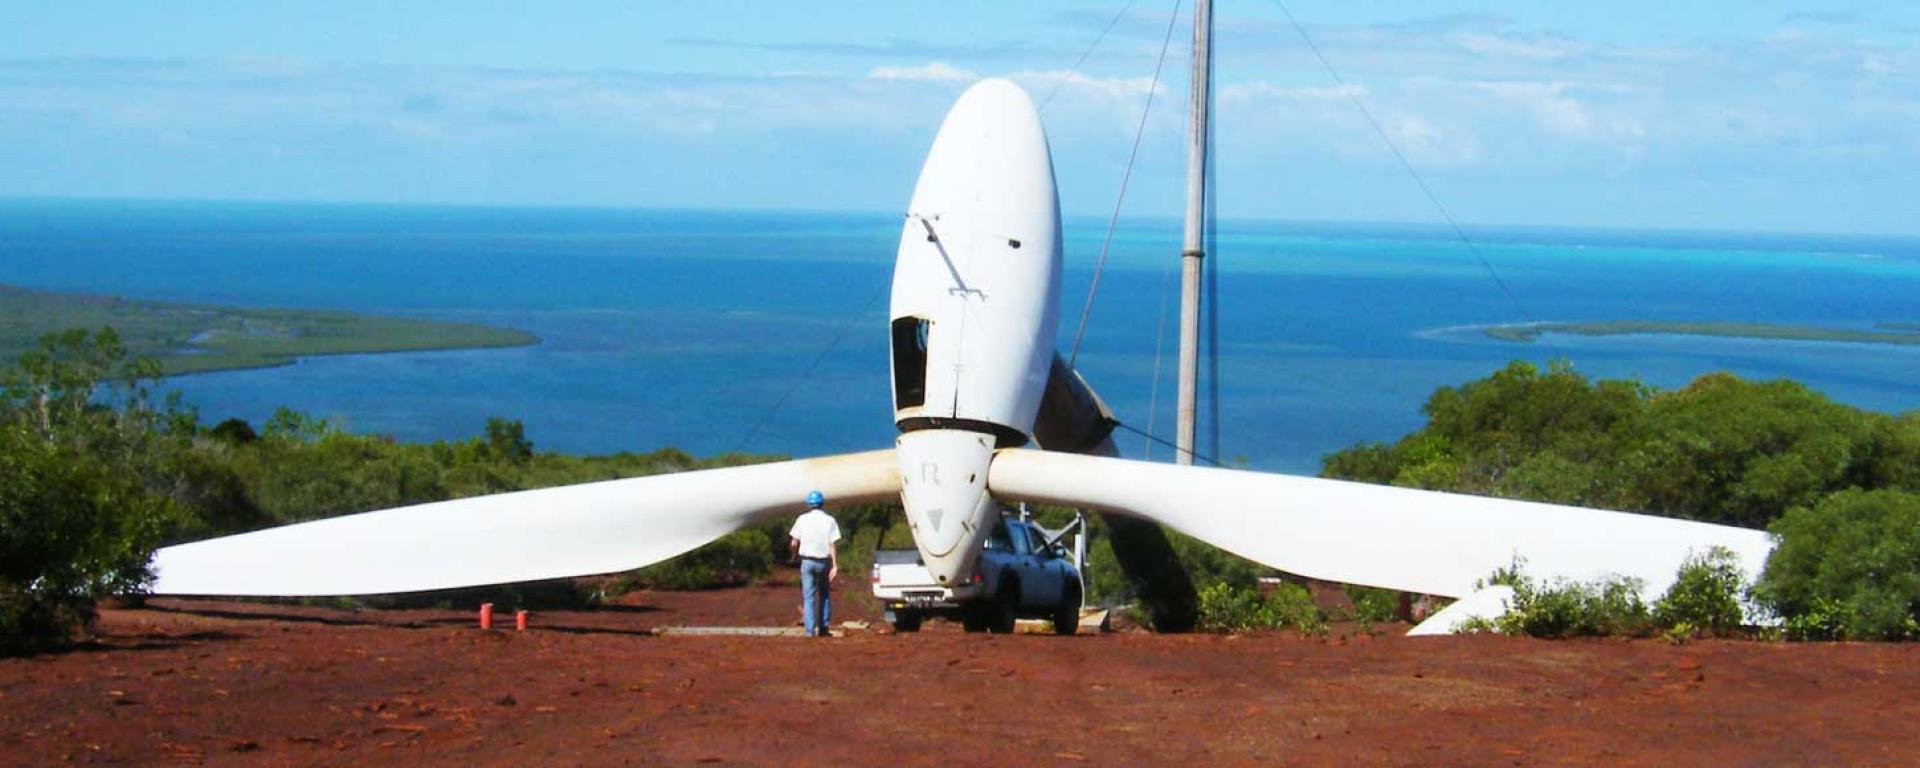 Generating sustainable energy from wind for the island nation